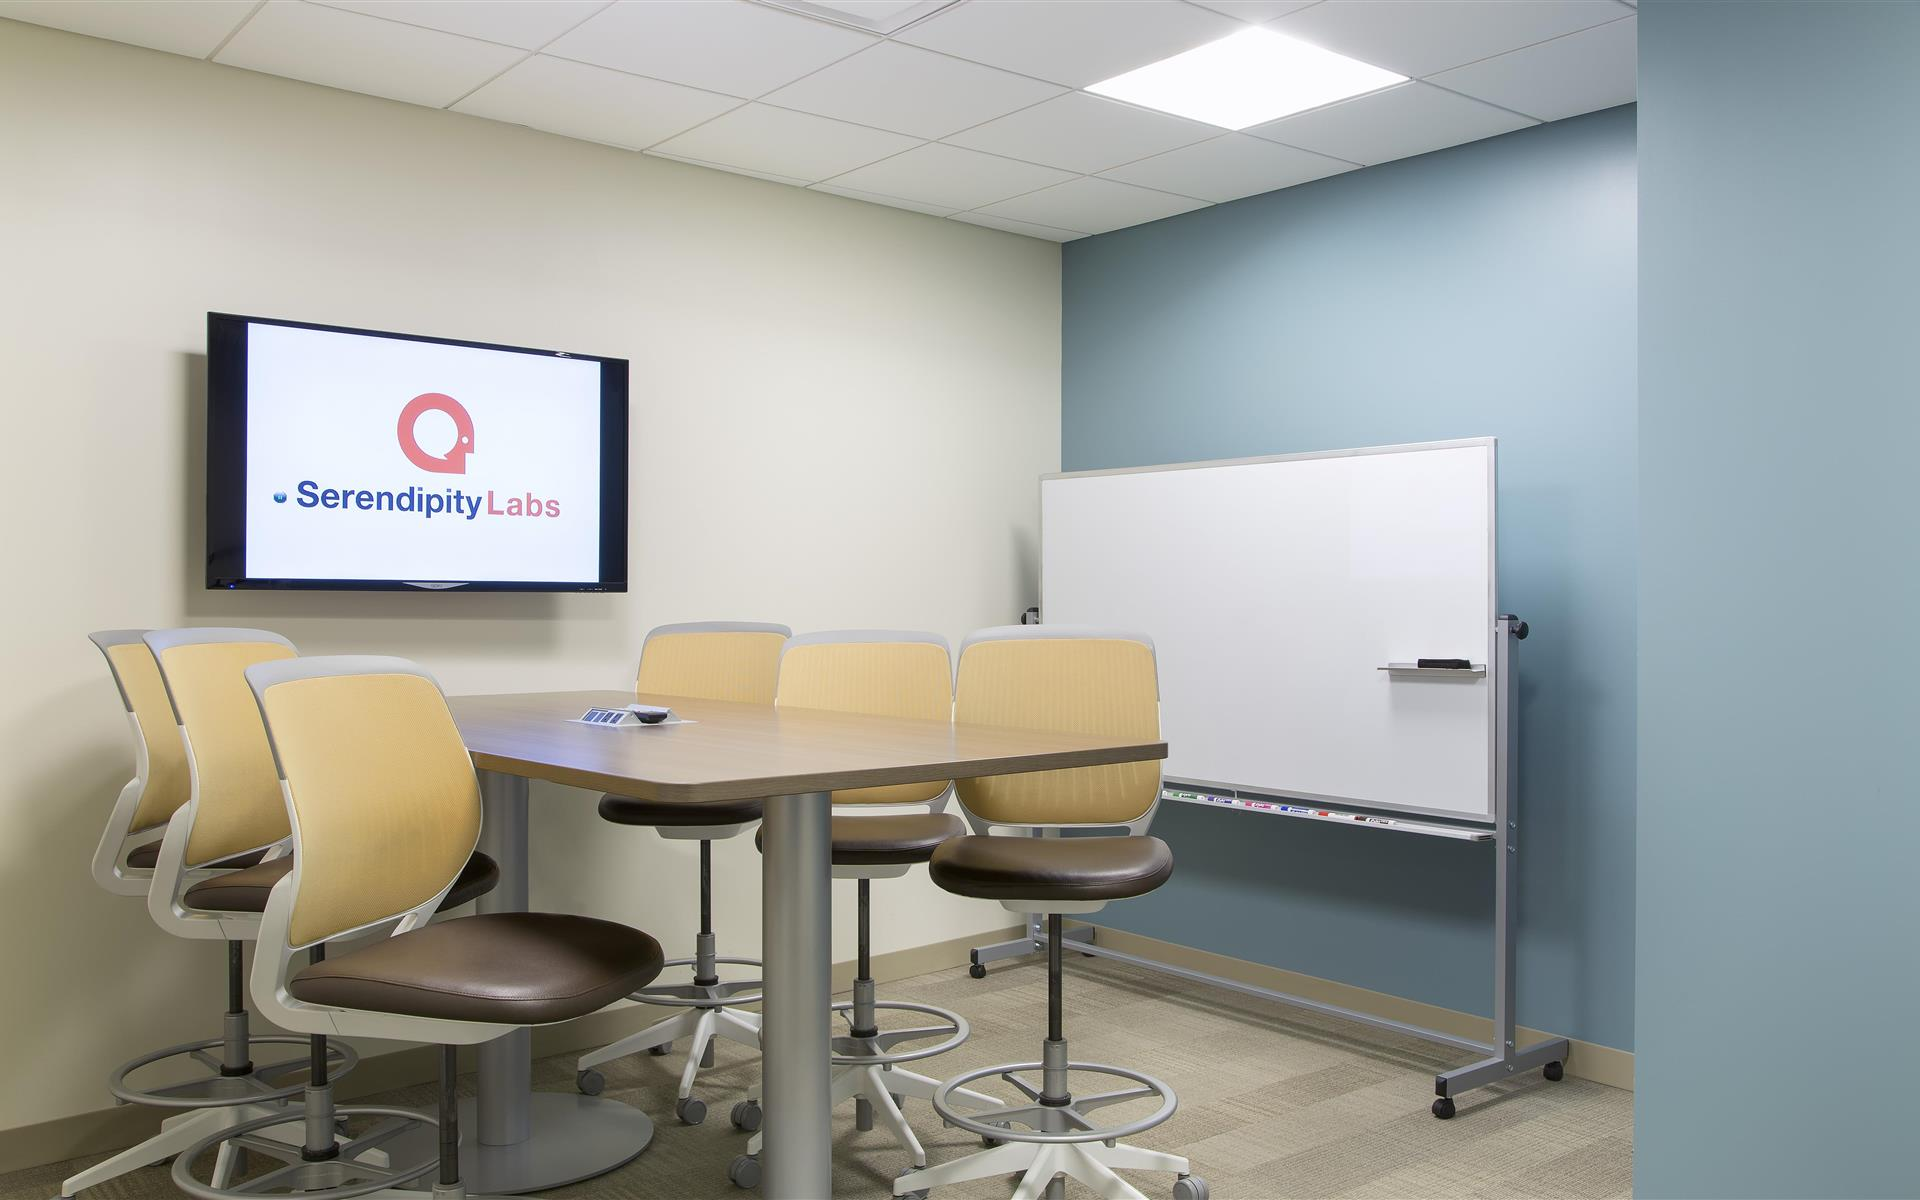 Serendipity Labs Chicago OSW - Meetup room for up to 6 starting at $49